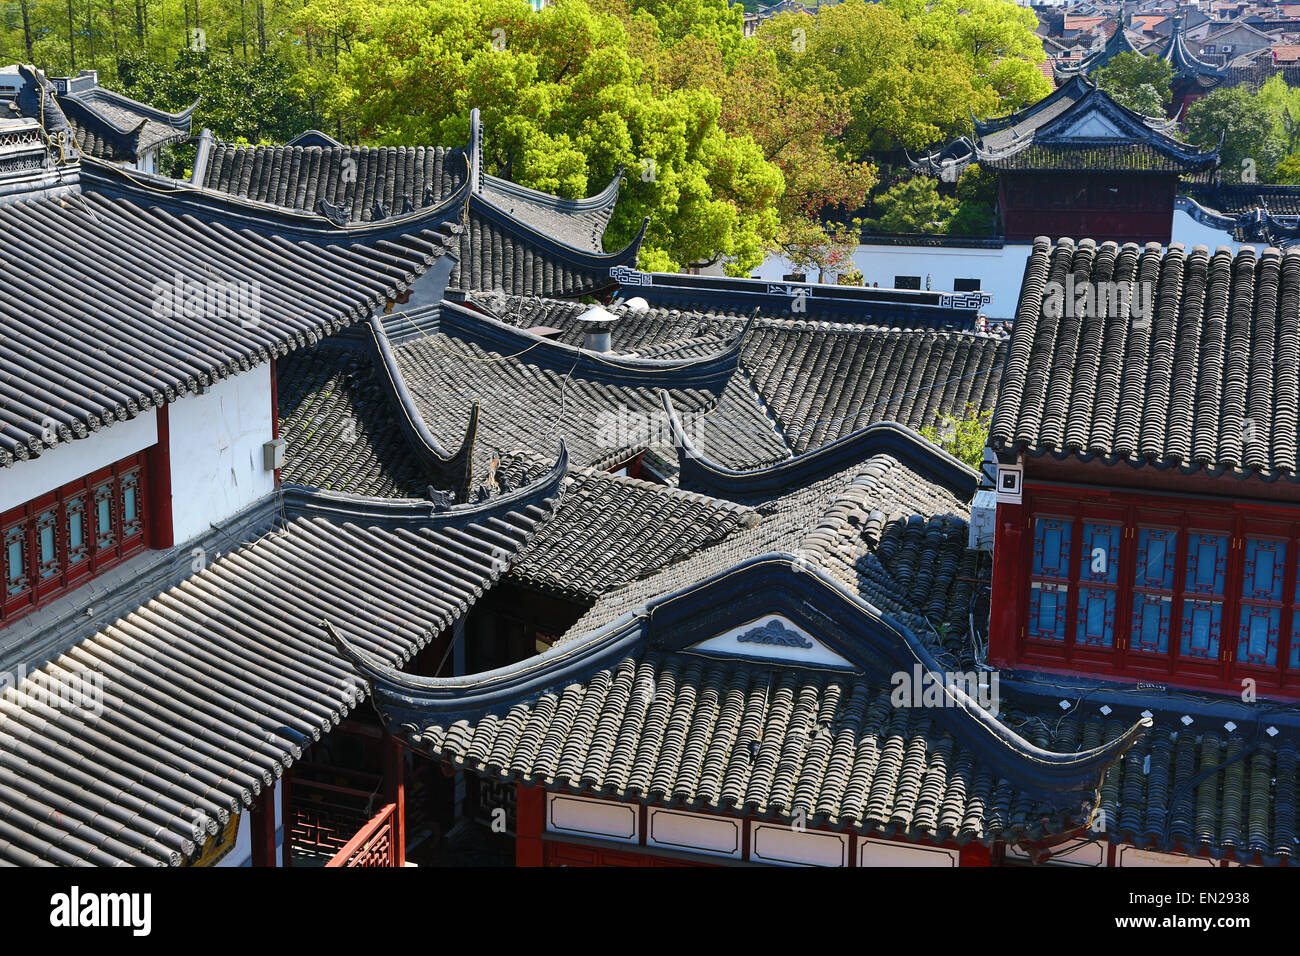 Black tiles roofs of traditional buildings in the Old City, Shanghai, China - Stock Image